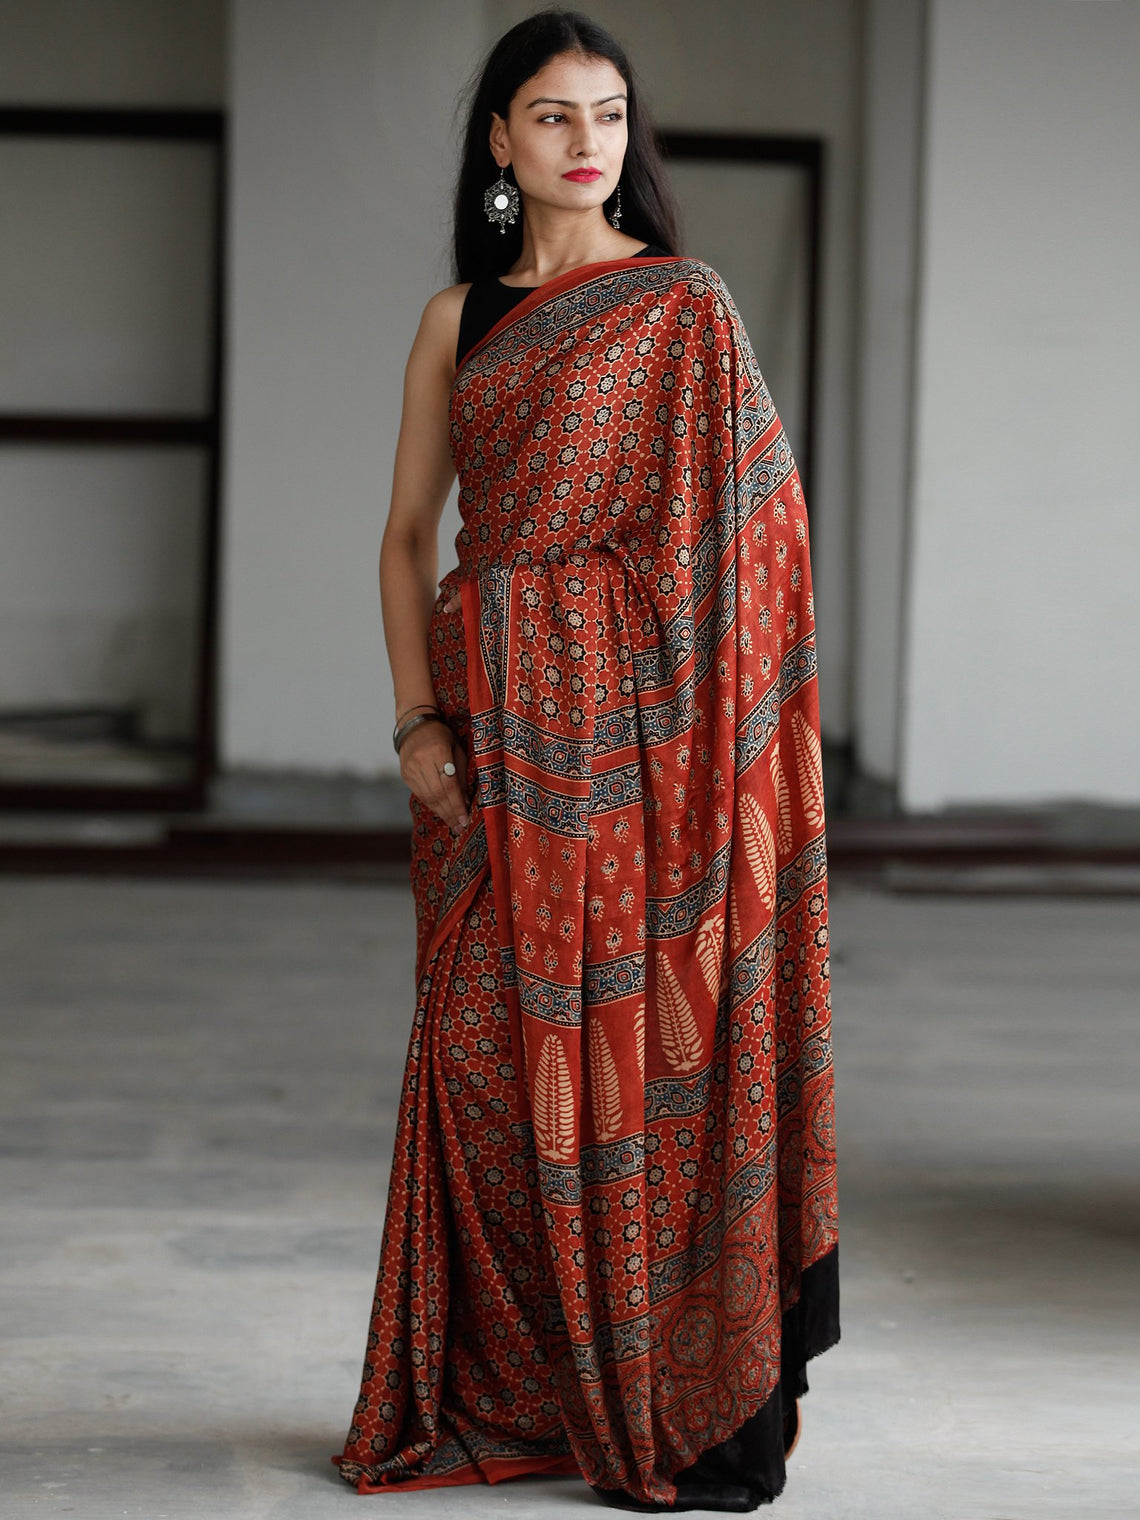 Red Beige Indigo Black Ajrakh Hand Block Printed Modal Silk Saree in Natural Colors - S031703733